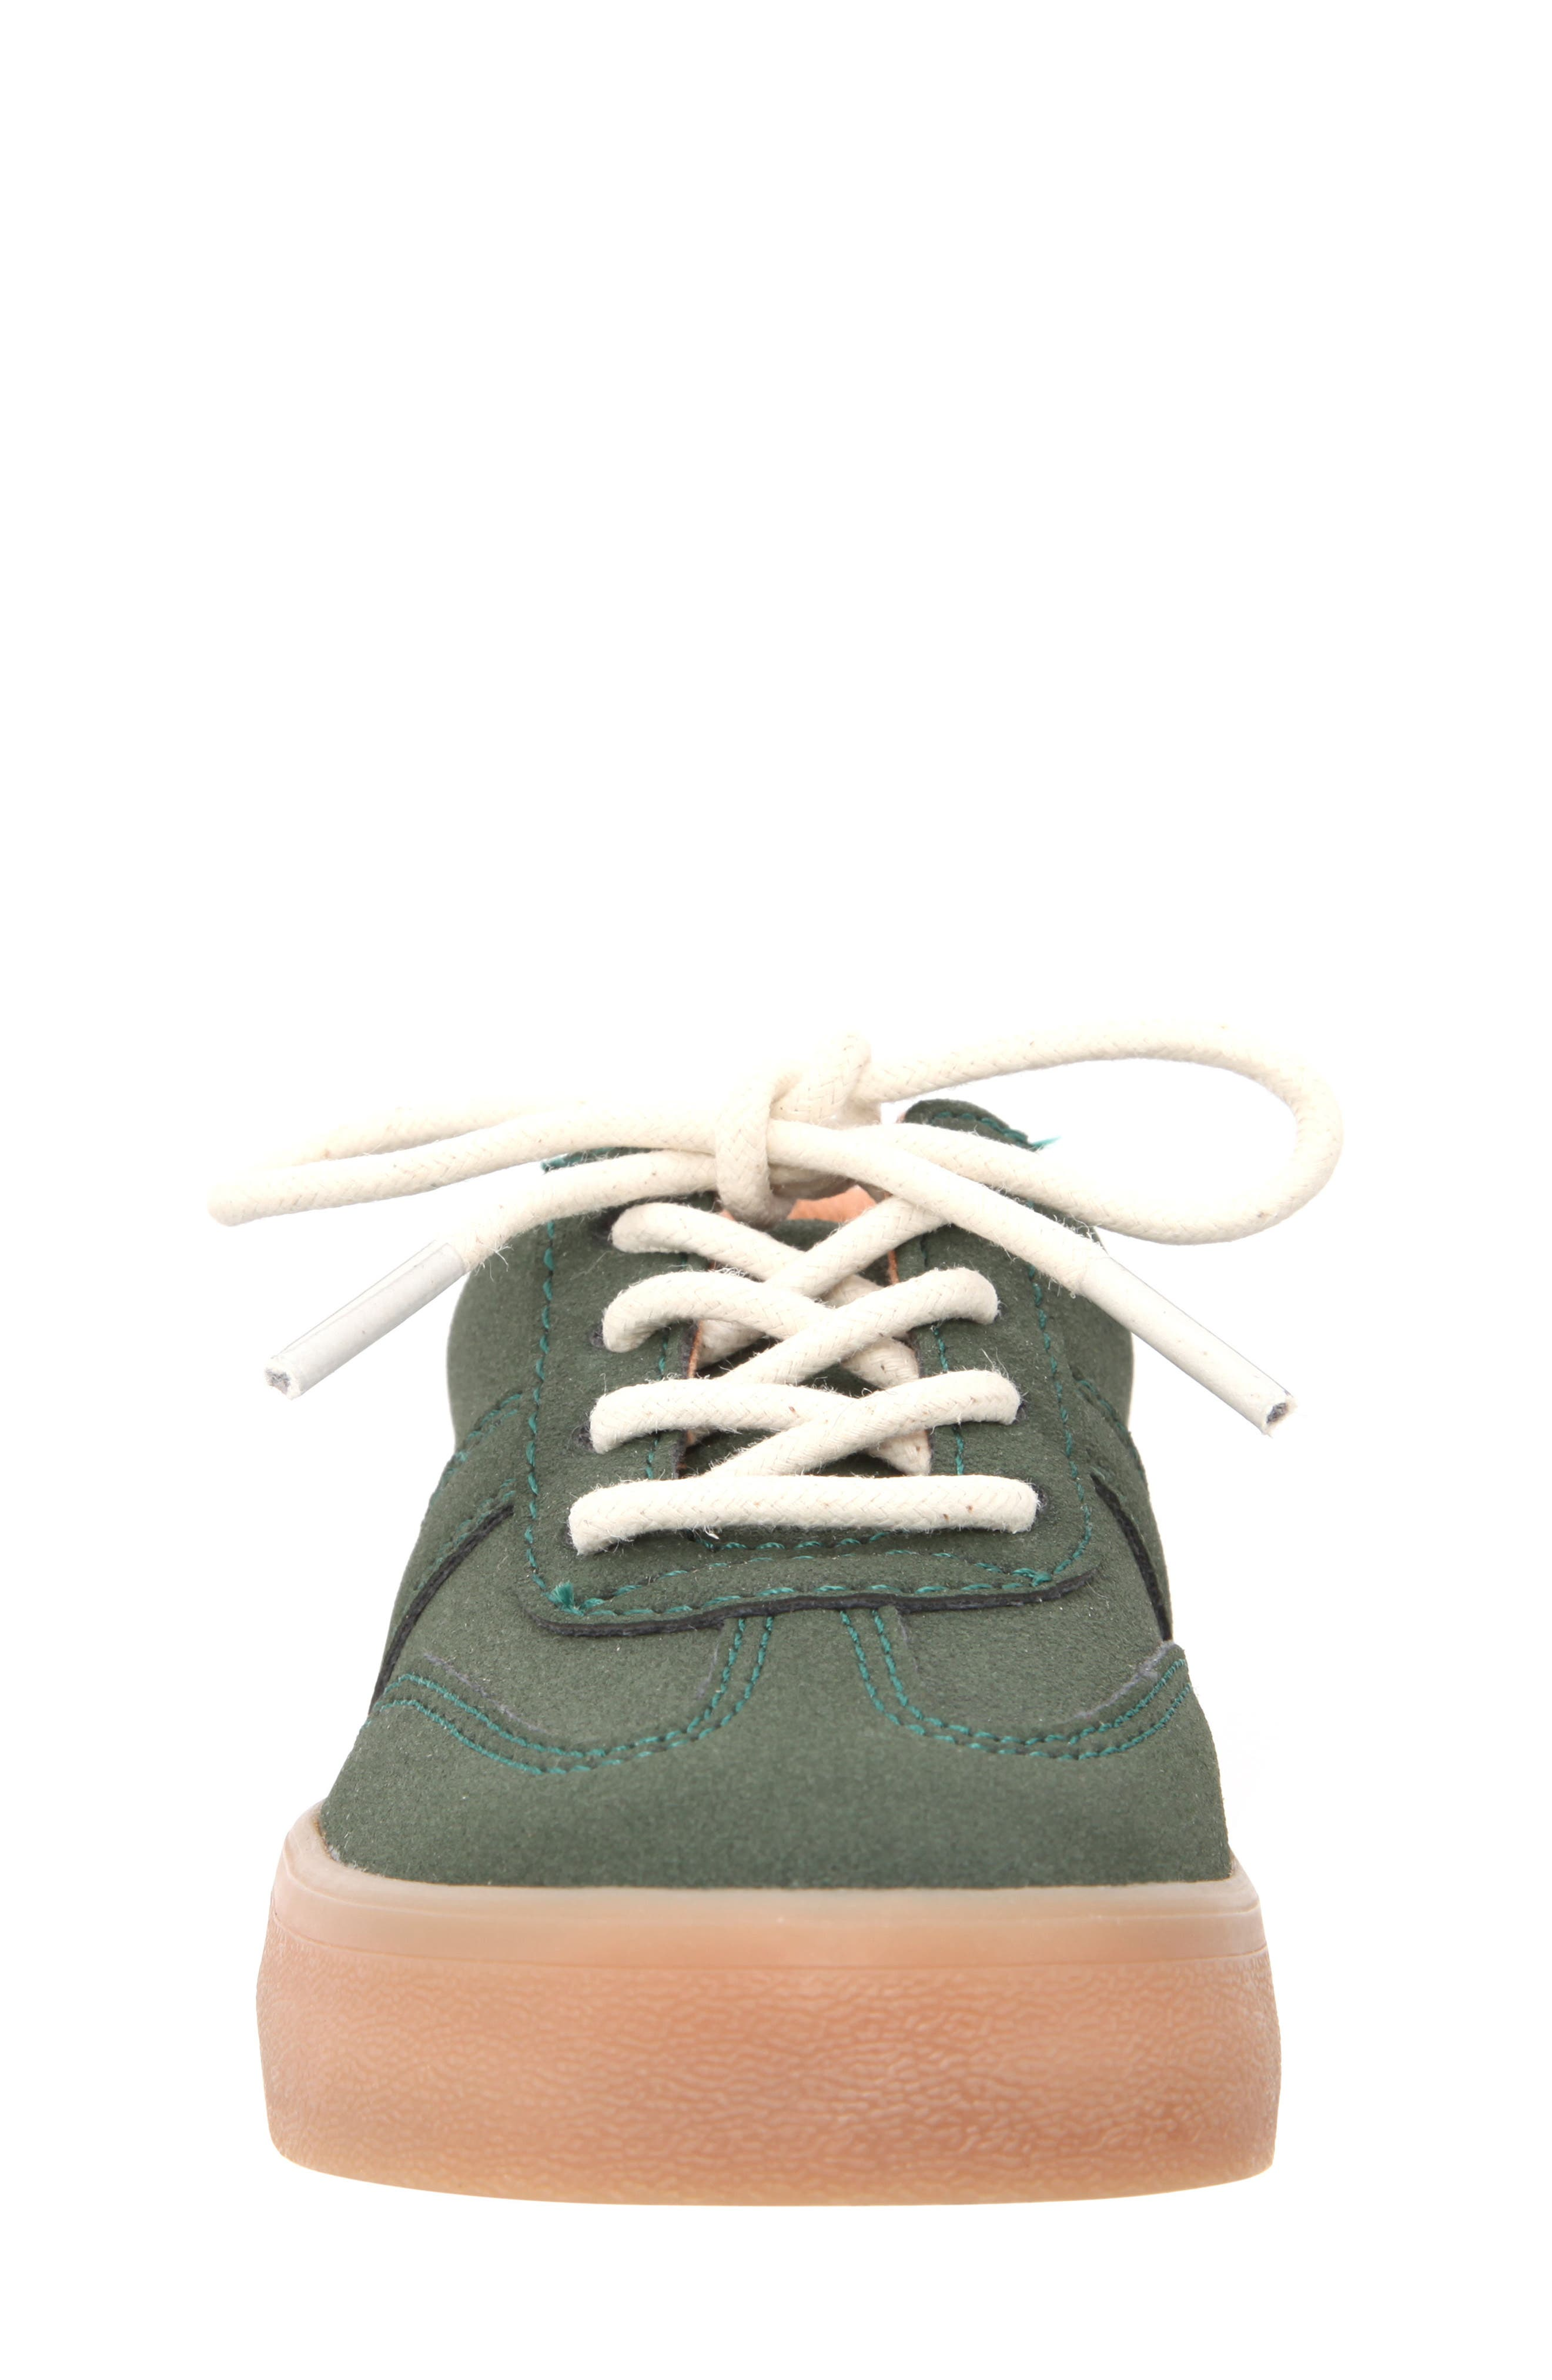 Neal Low Top Sneaker,                             Alternate thumbnail 4, color,                             Olive Suede